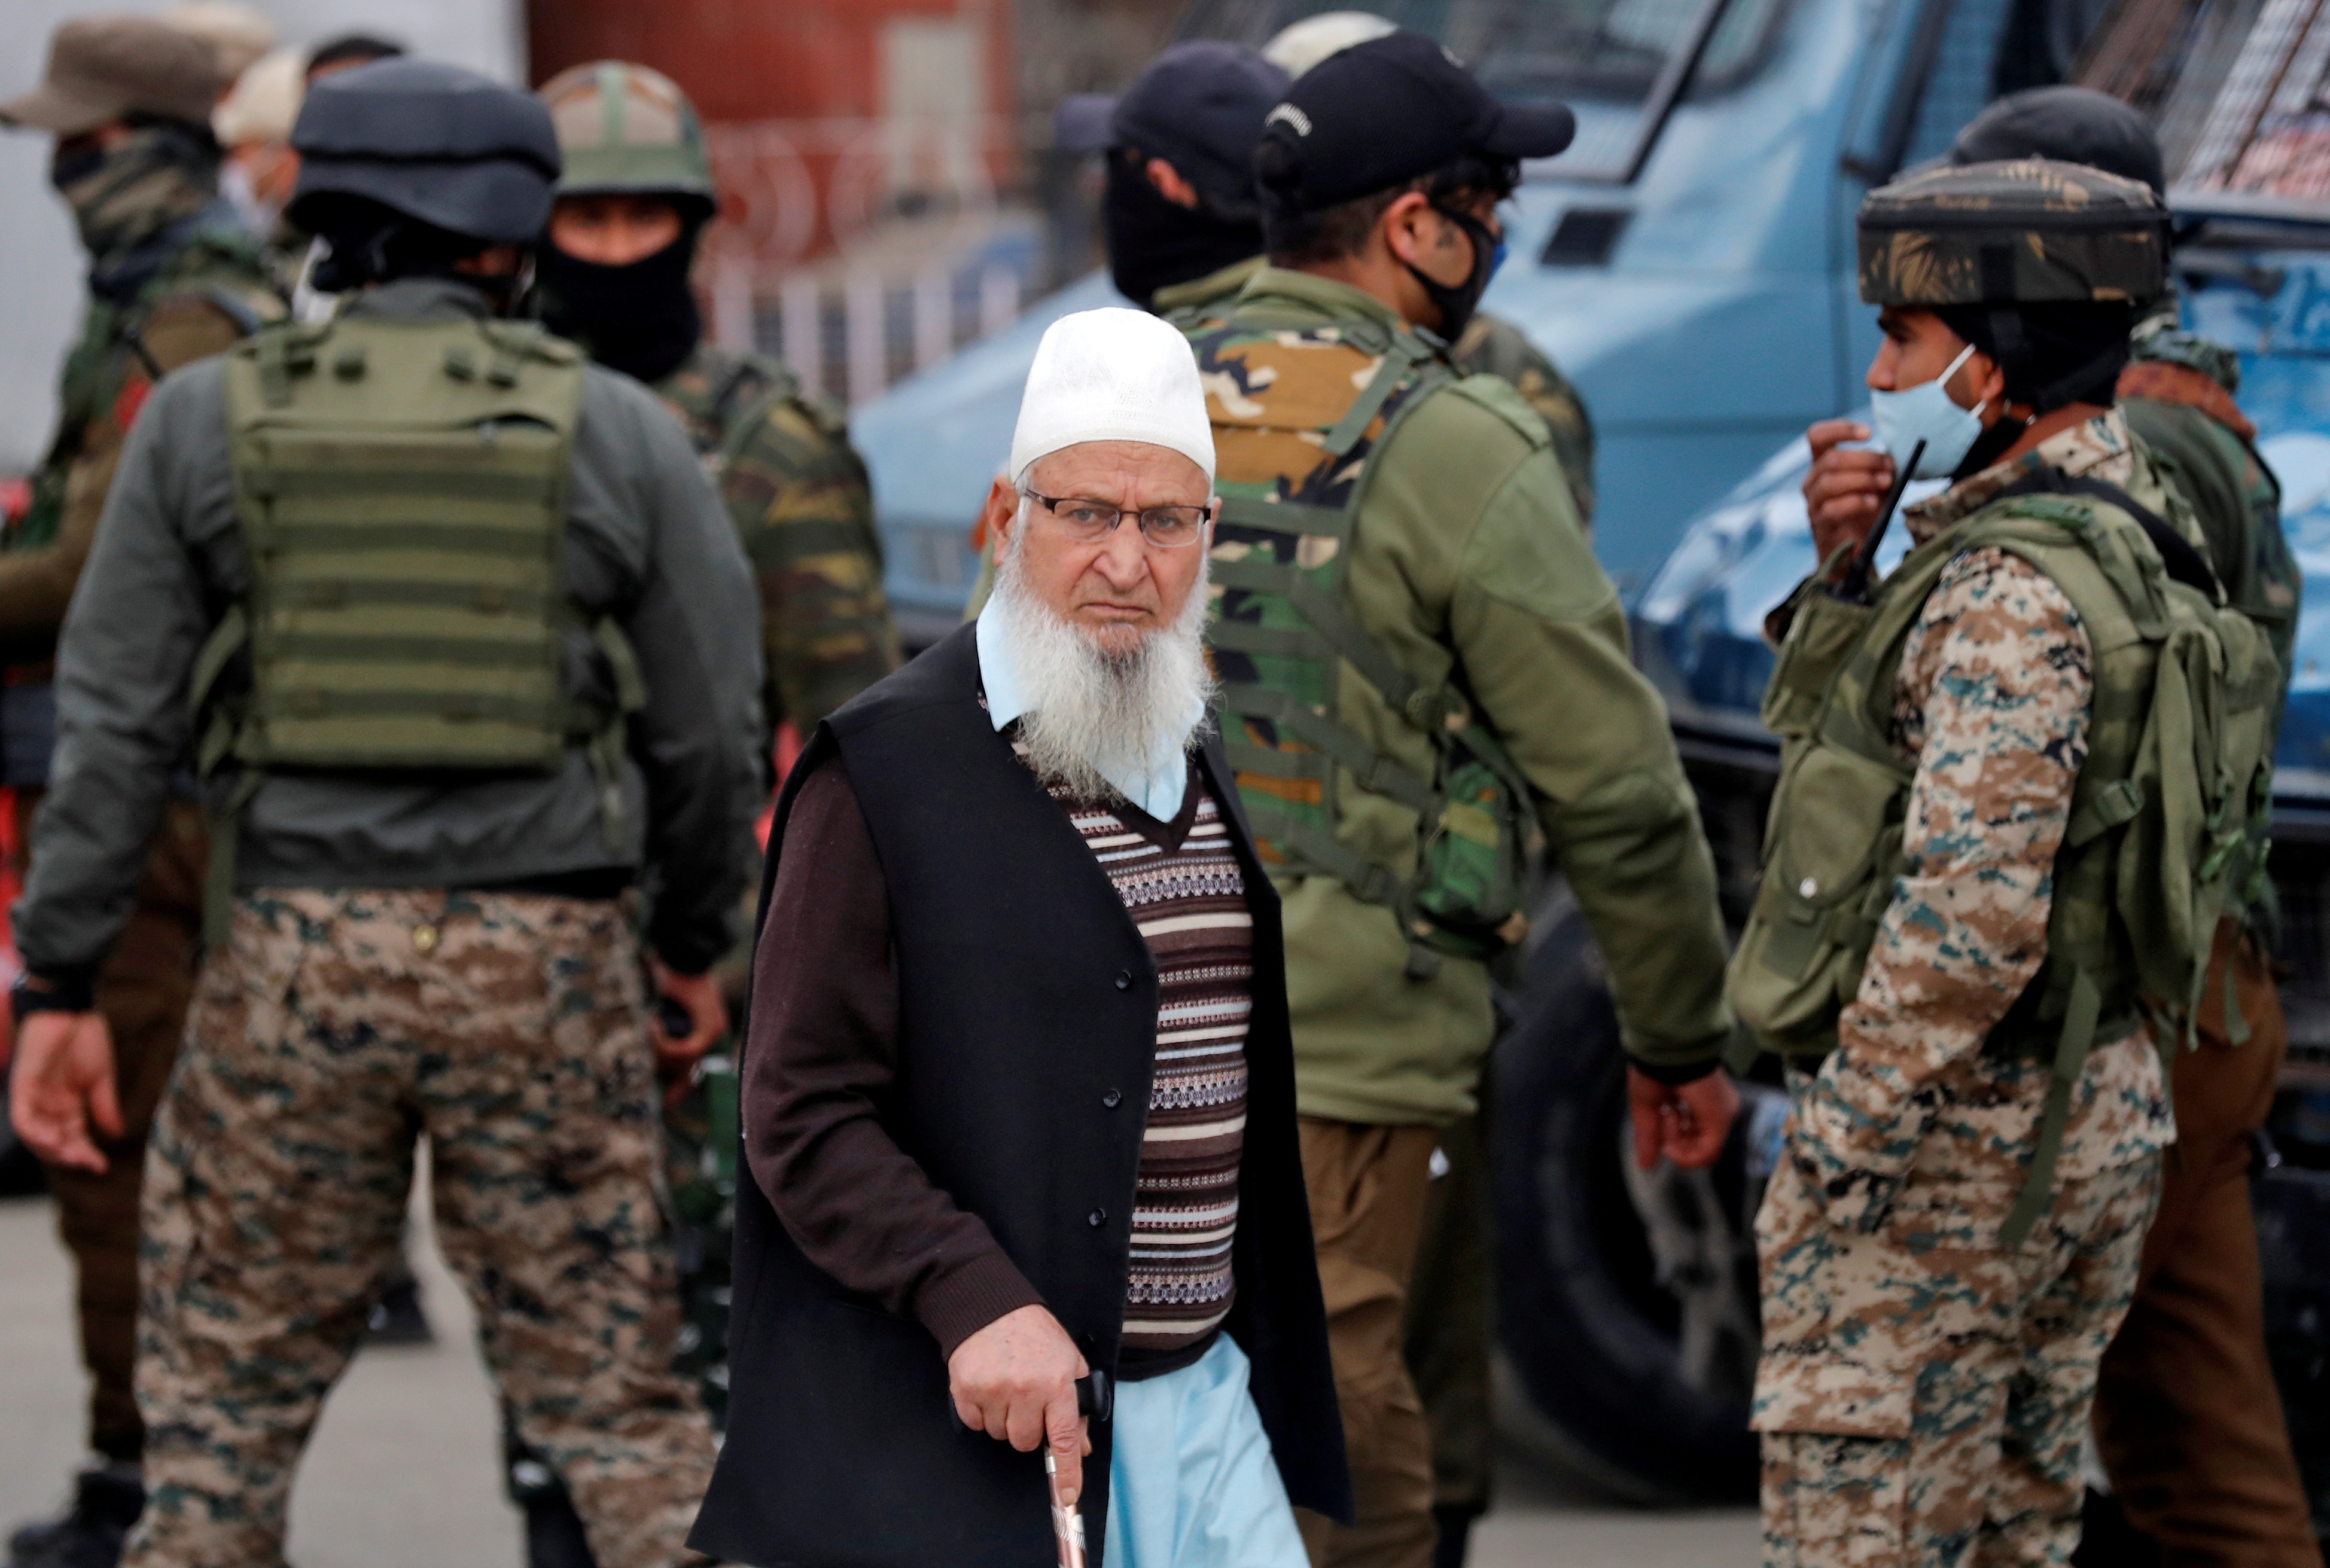 A Kashmiri Muslim man walks past Indian security force personnel standing guard during a cordon and search operation, in Srinagar February 26, 2021. REUTERS/Danish Ismail/File Photo